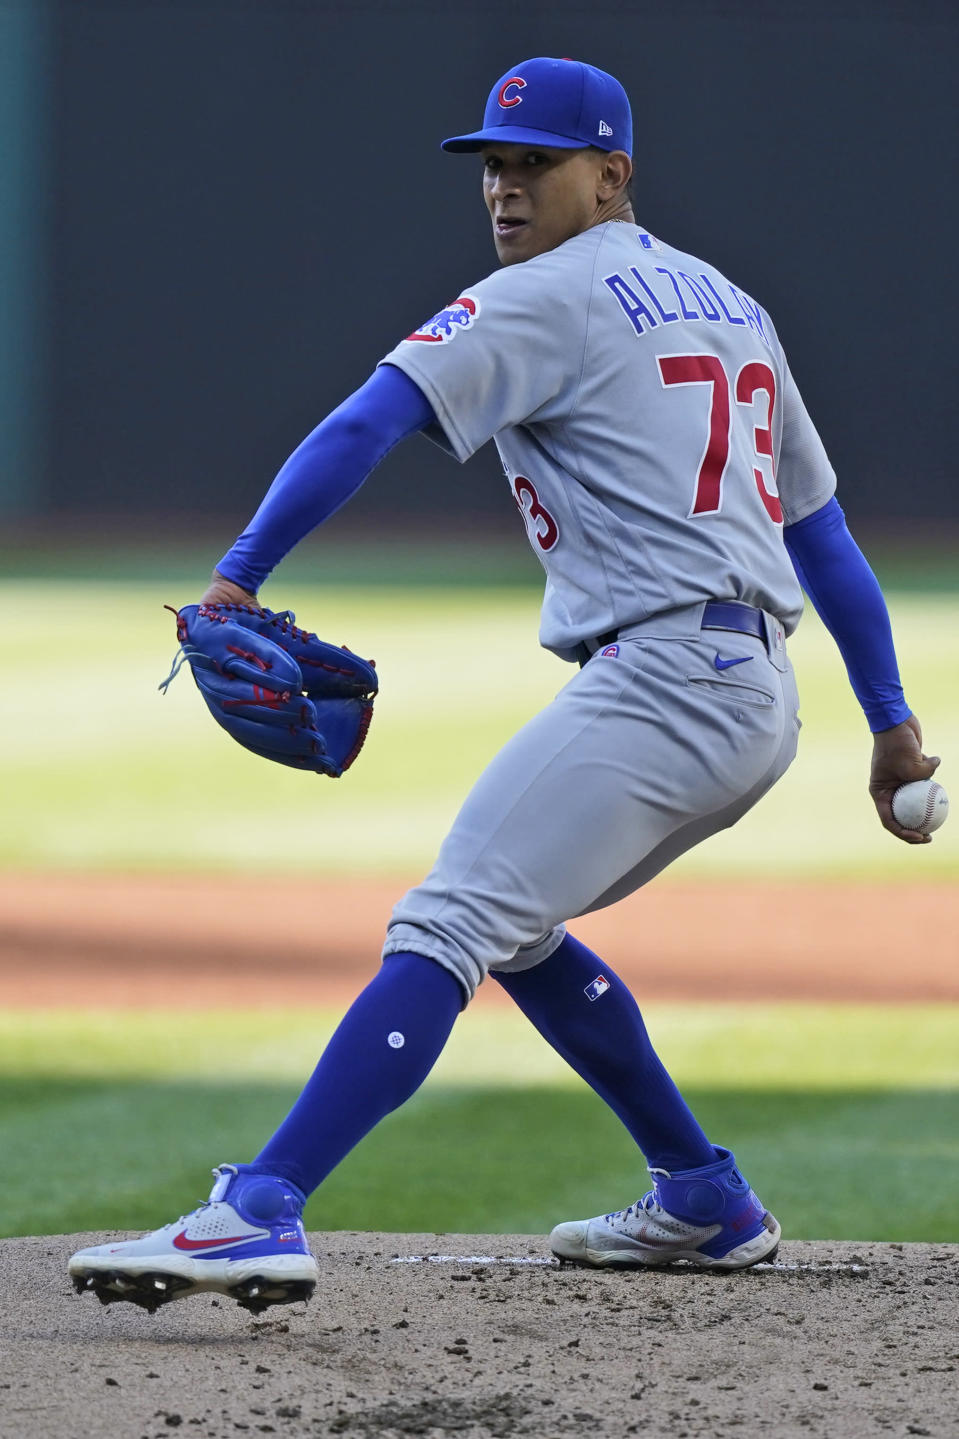 Chicago Cubs starting pitcher Adbert Alzolay delivers in the first inning of a baseball game against the Cleveland Indians, Tuesday, May 11, 2021, in Cleveland. (AP Photo/Tony Dejak)